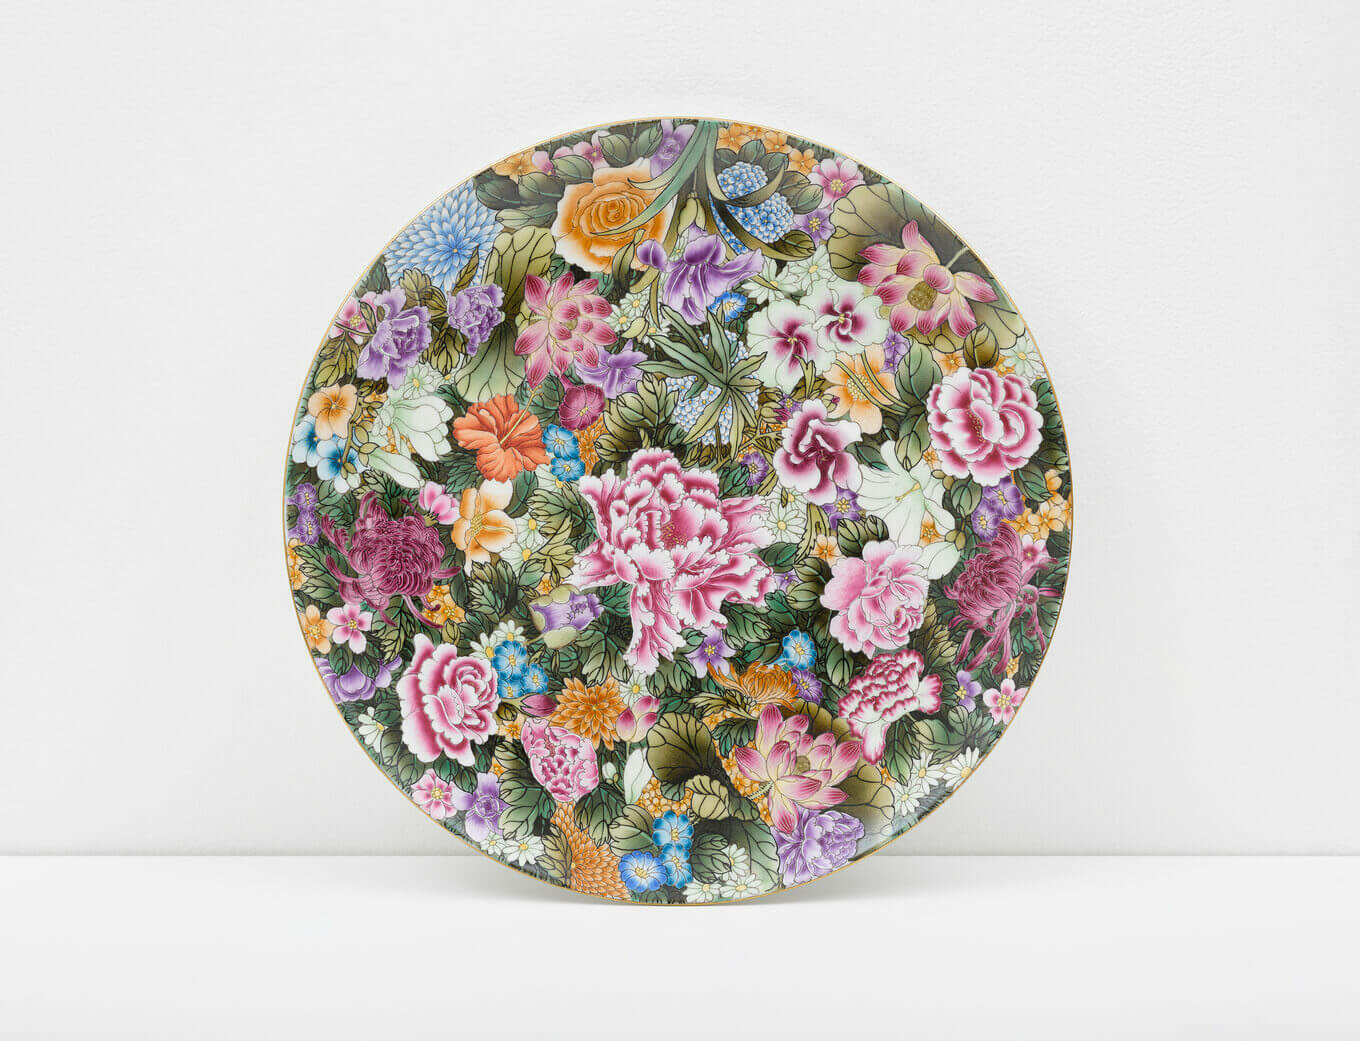 Work by Ai Weiwei and Anish Kapoor feature in Sotheby's sale for food surplus charity The Felix Project